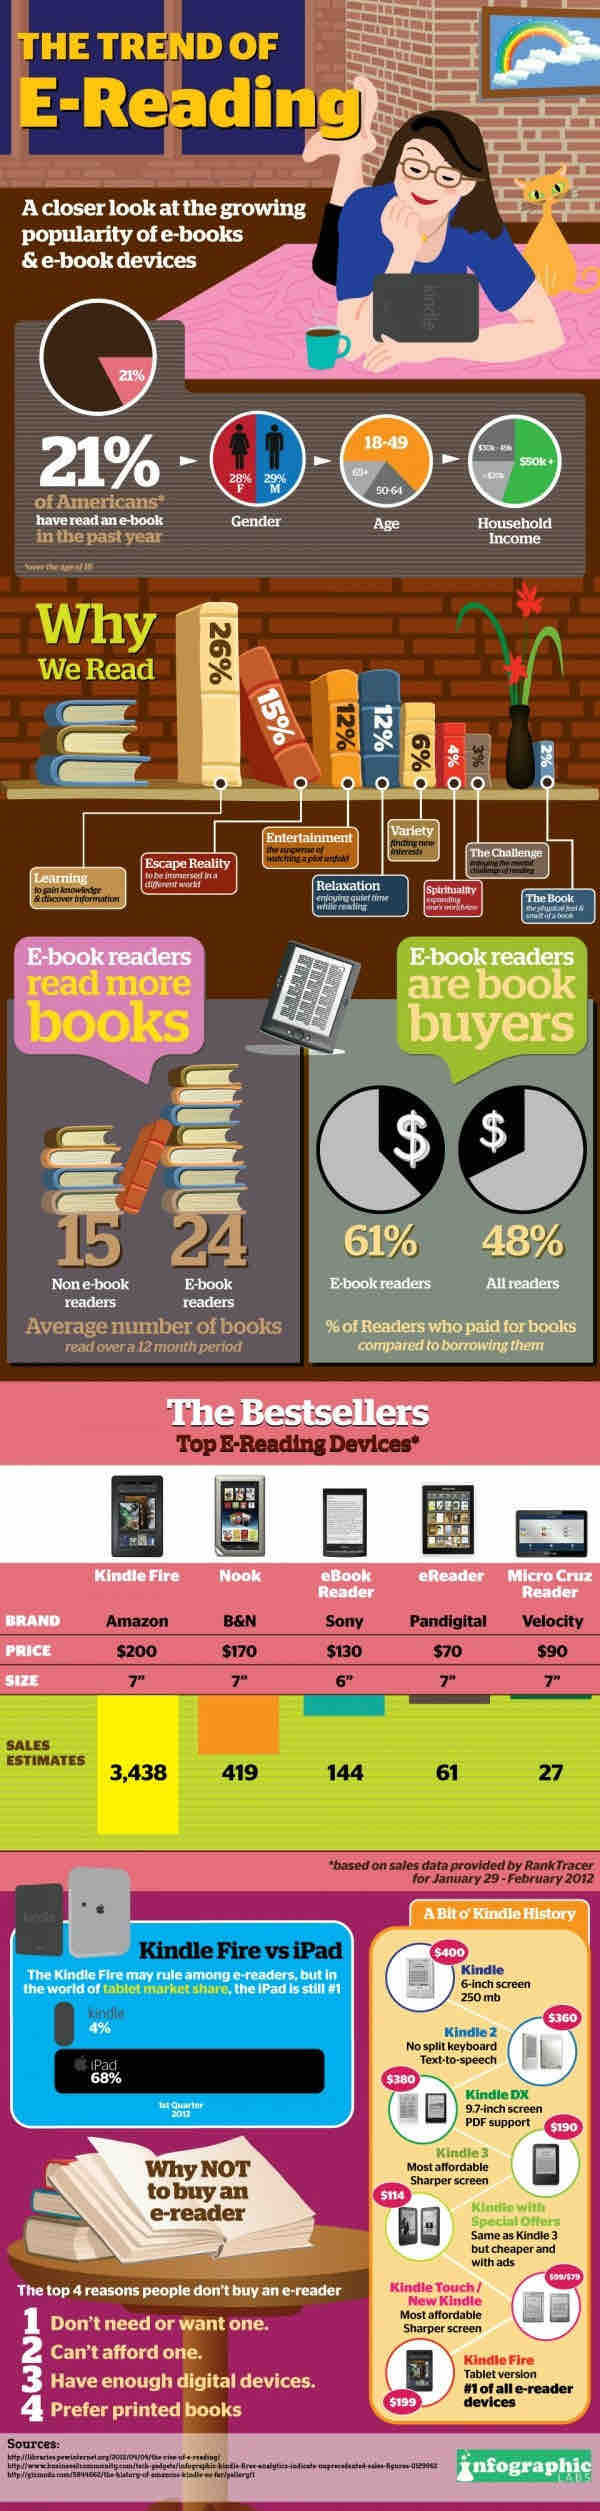 Is e-Reading a Trend? Infographic on the State of eReading